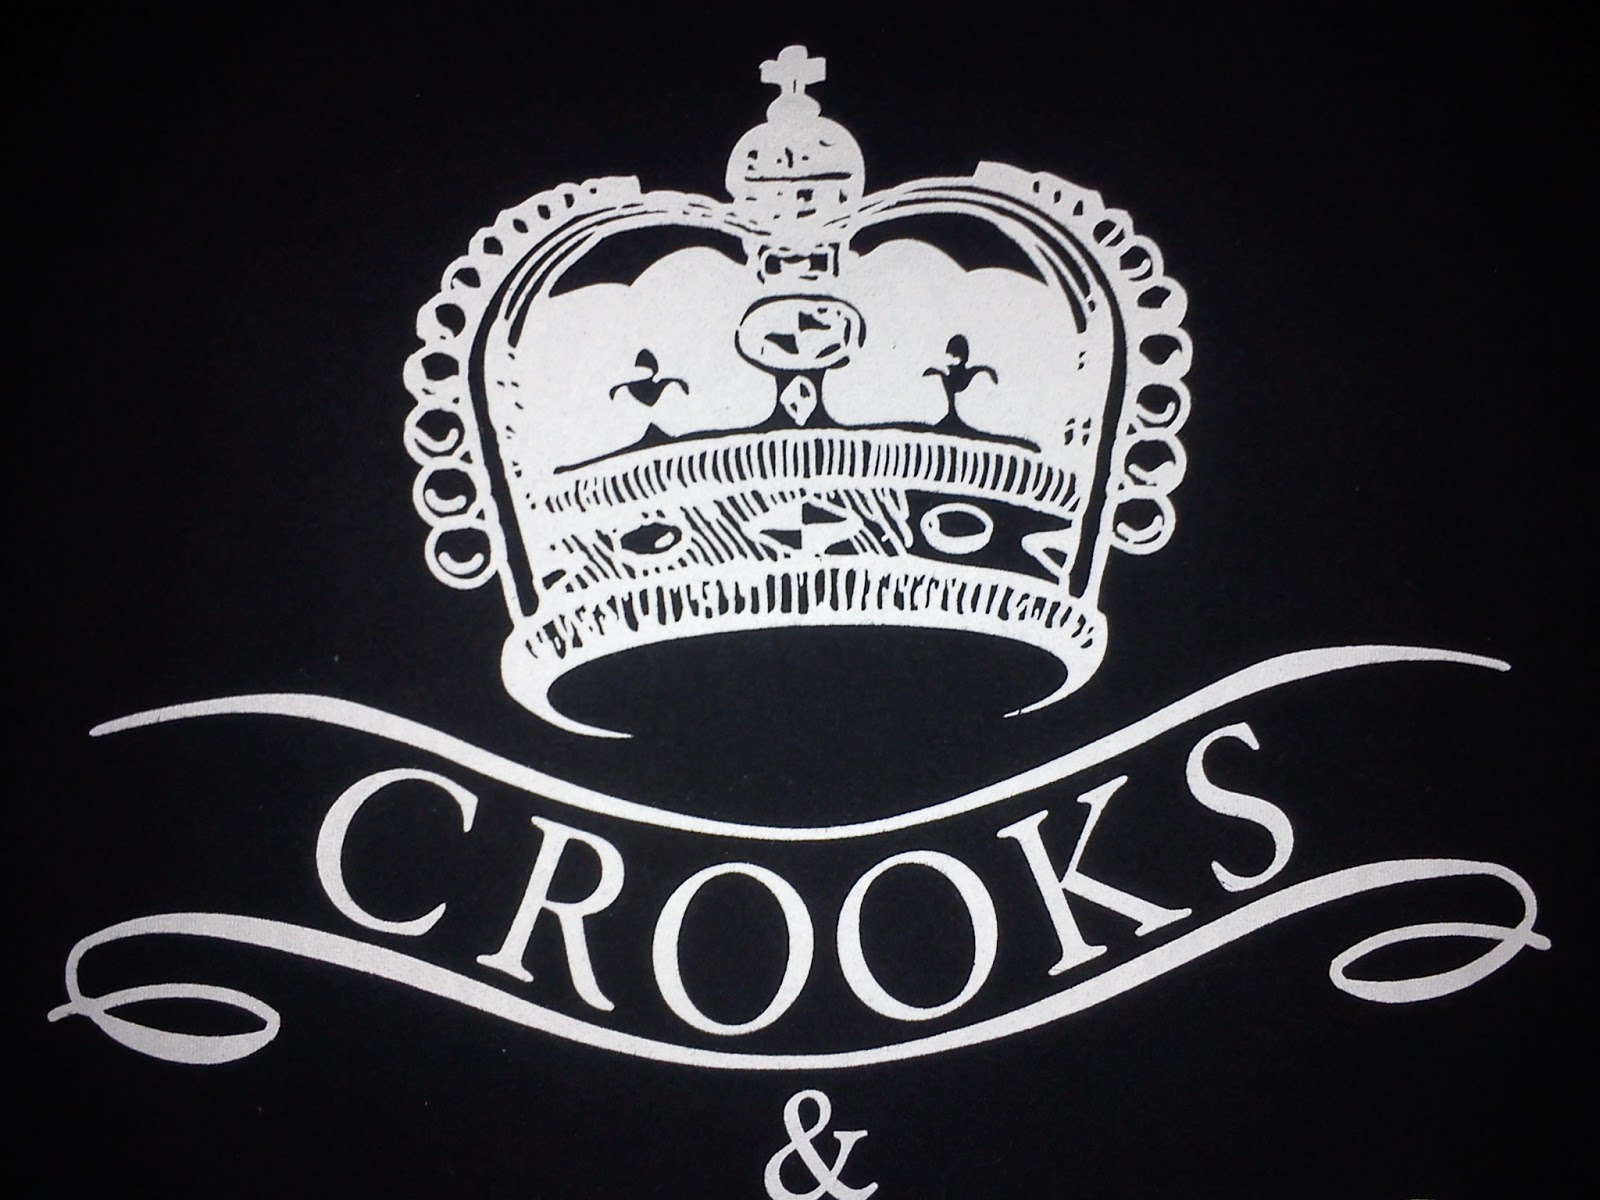 Crooks And Castles Logo Wallpaper Crooks and castles t shirt 1600x1200